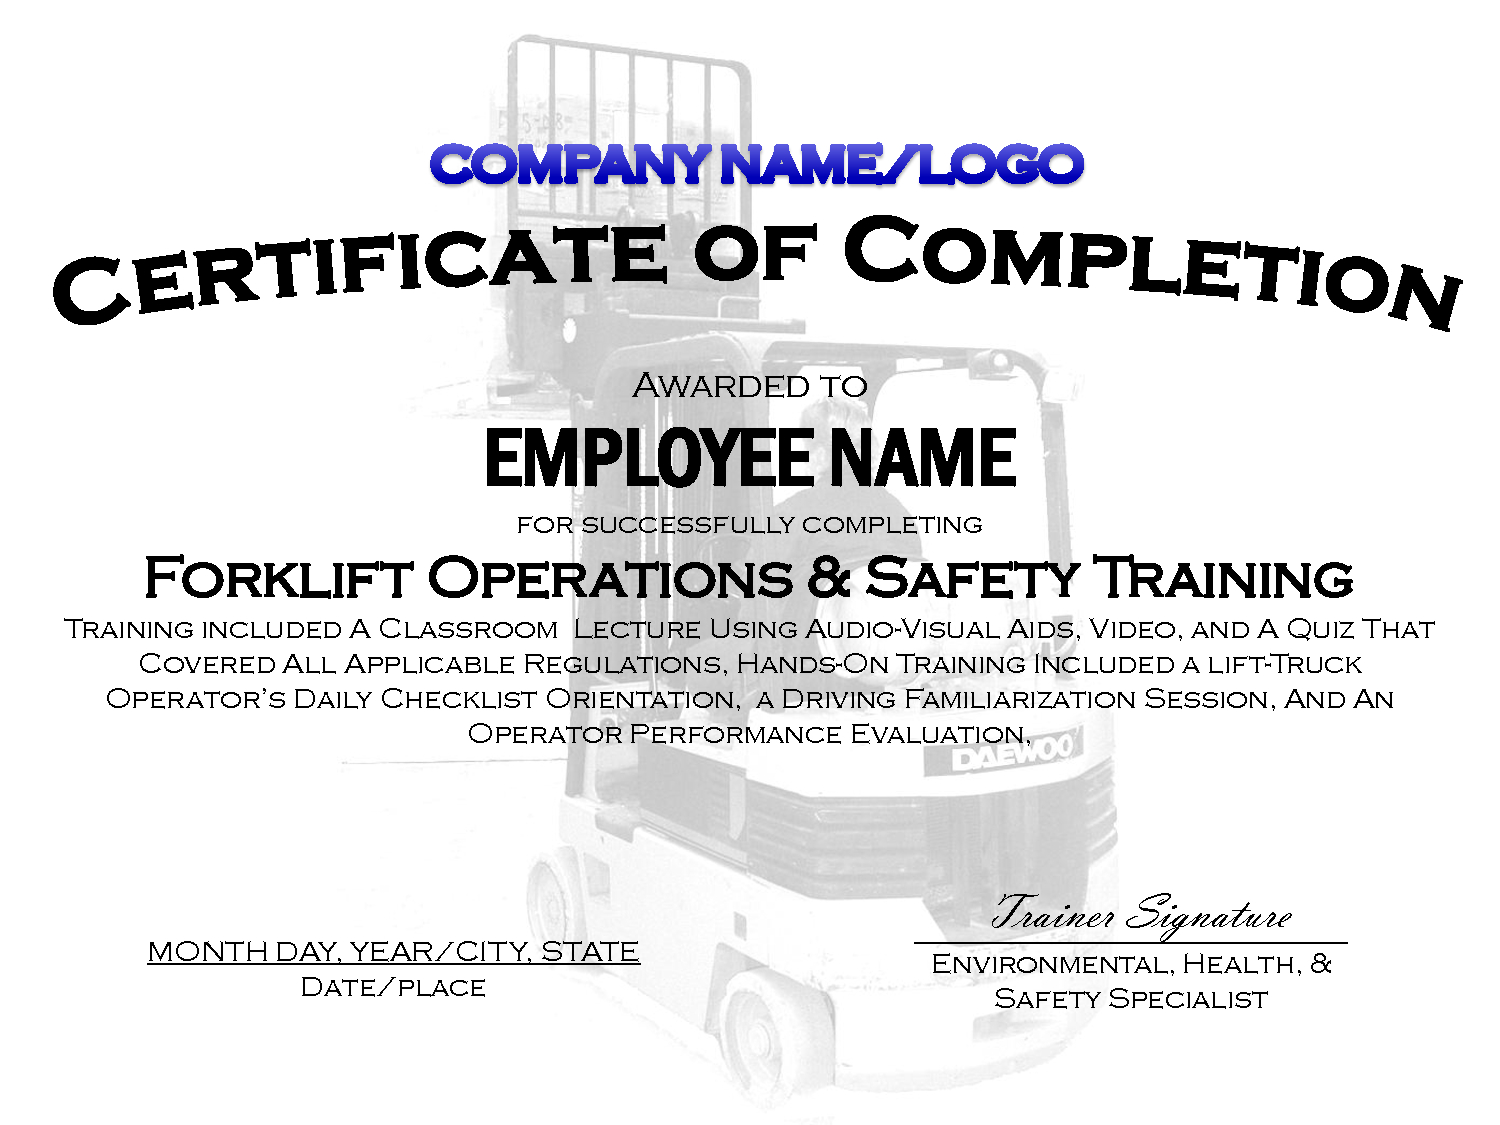 Forklift Certification Certificate Template - Demir.iso-Consulting.co - Free Printable Forklift Certification Cards